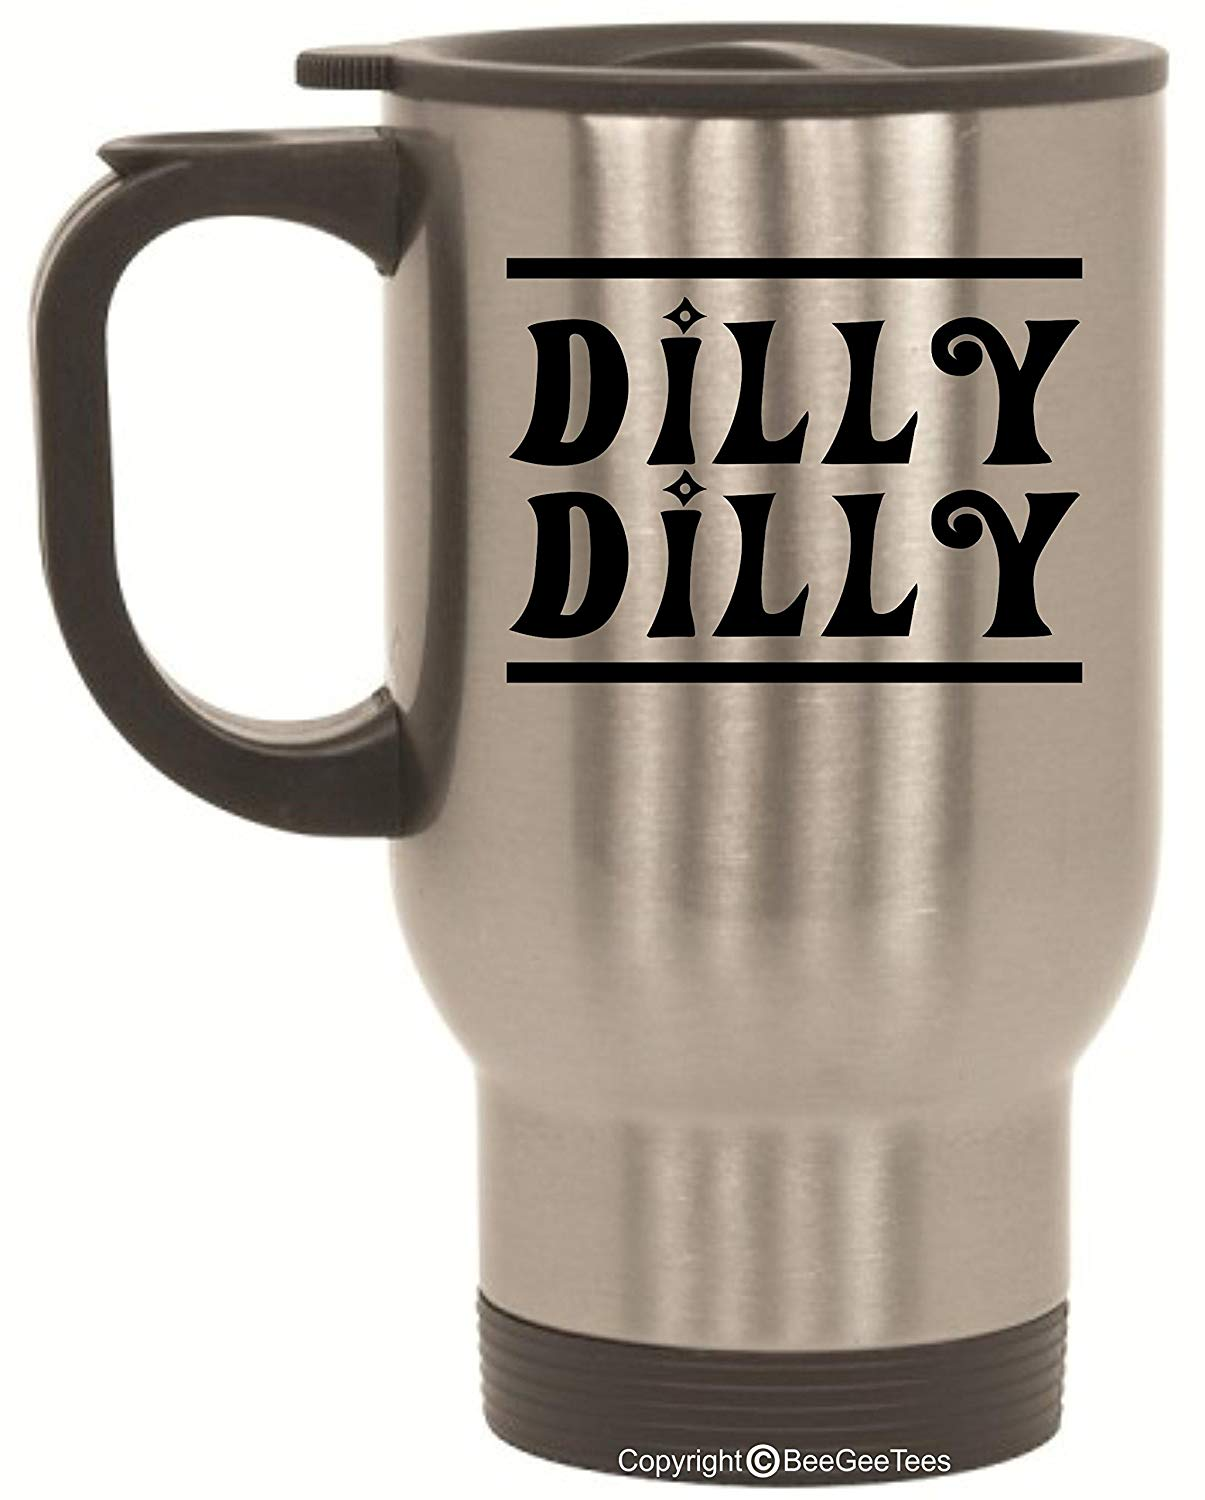 Dilly Dilly Bud Light Parody Game of Thrones Inspired Funny Stainless Steel Travel Mug by BeeGeeTees (14 oz)